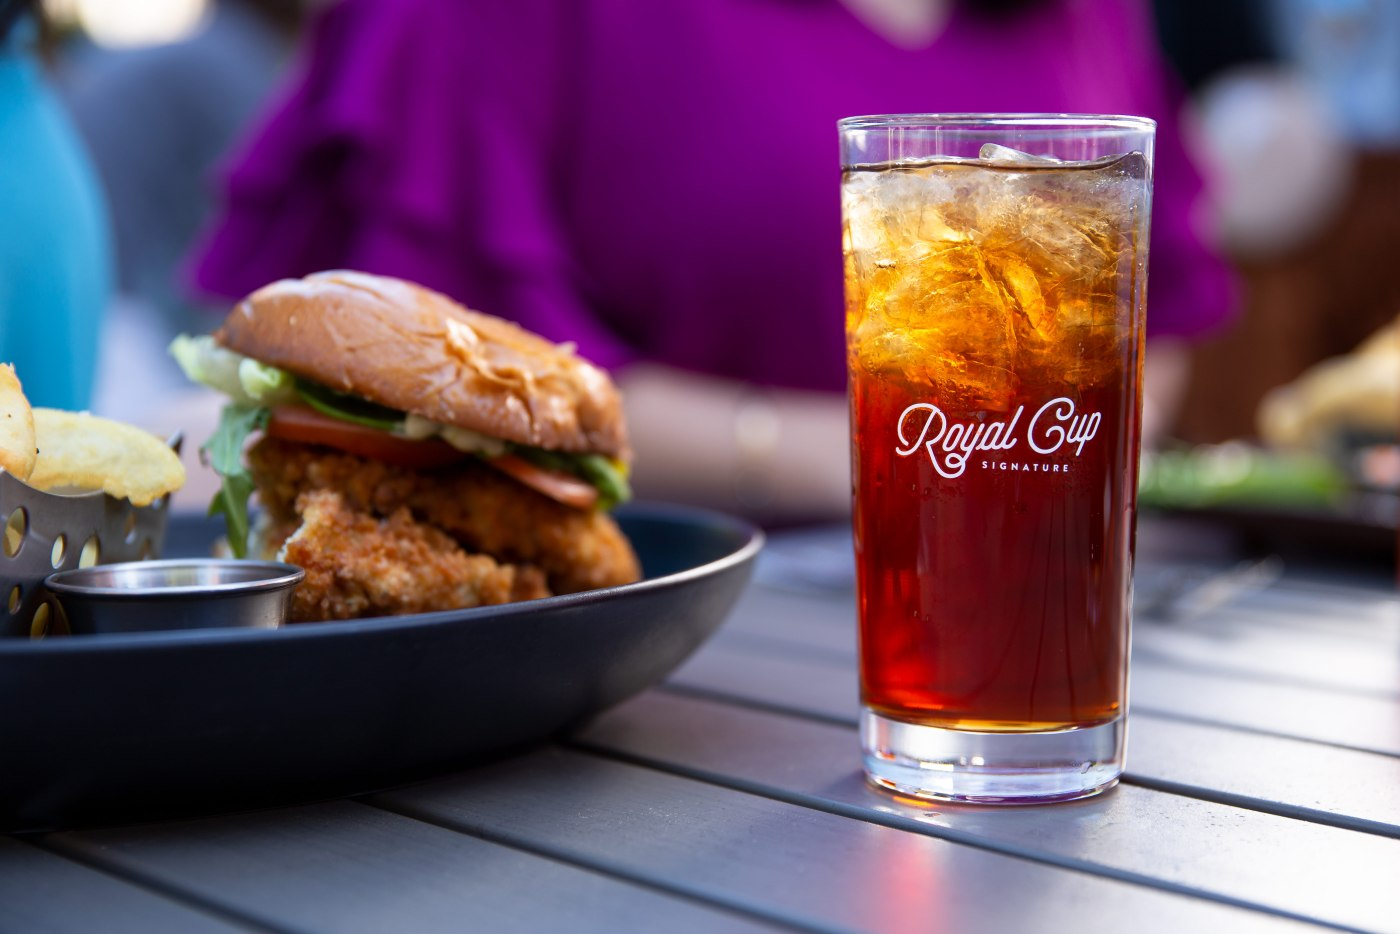 A refreshing glass of Royal Cup's iced tea